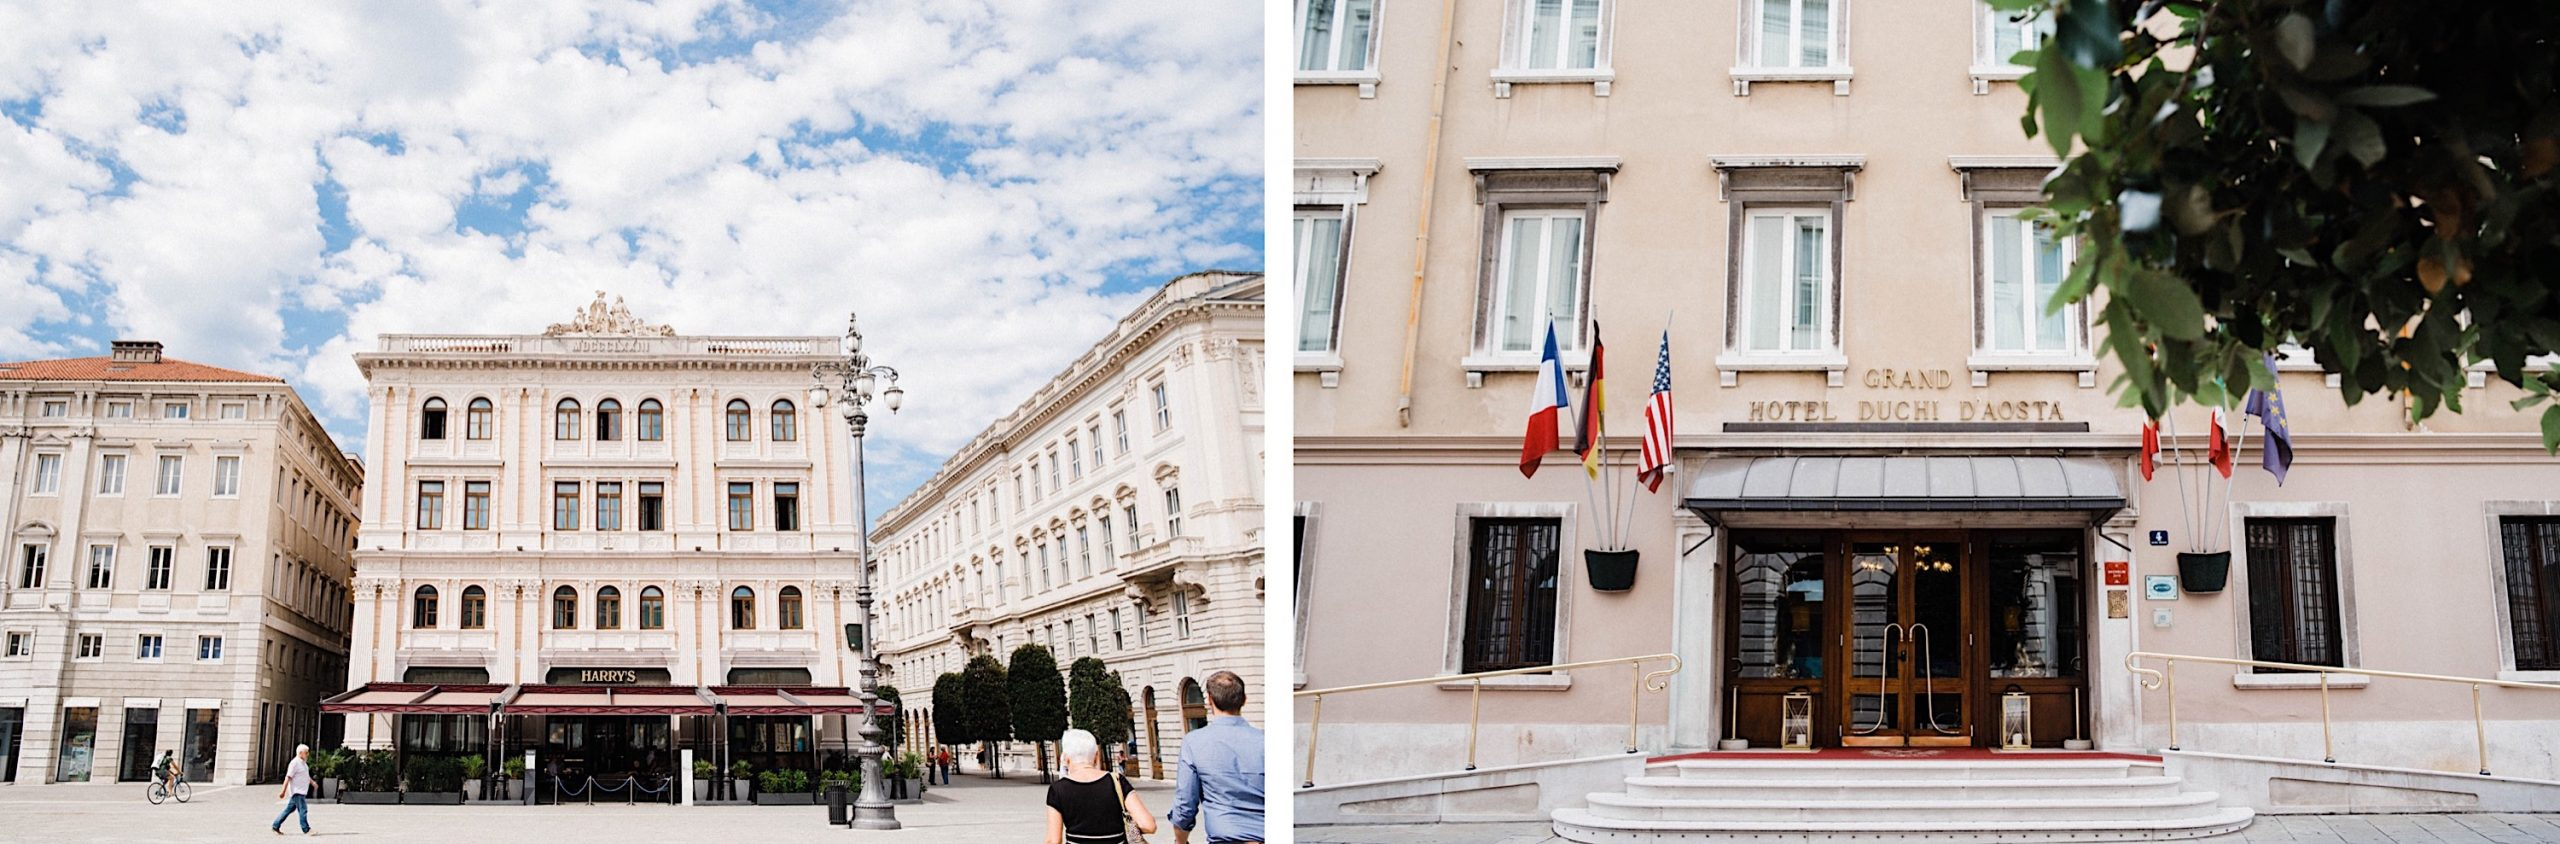 Two images side-by-side of the Grand Hotel Duchi D'Aosta in Trieste.